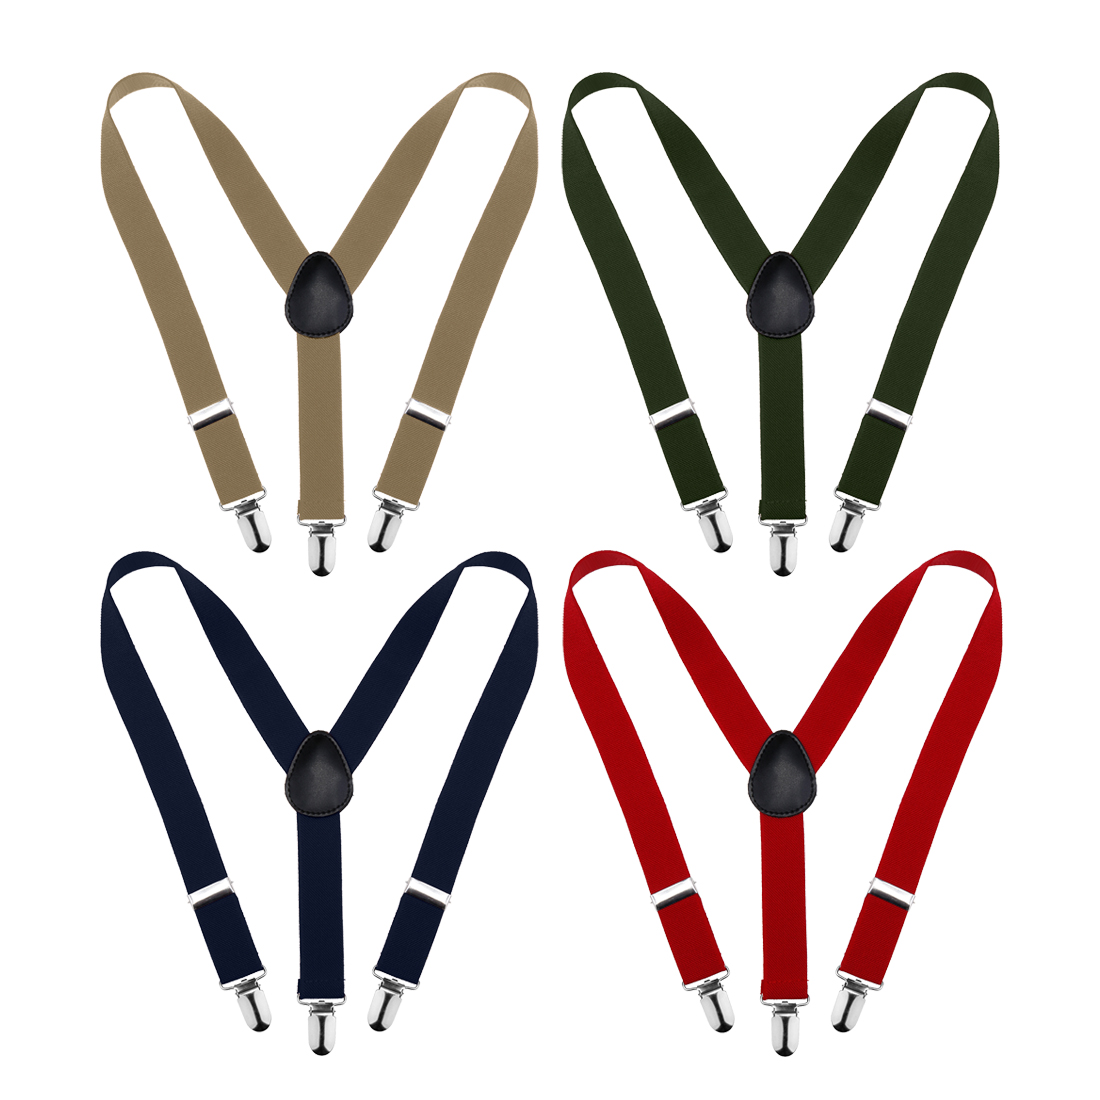 Bundle Monster 4 Pack Easy Clip-On Suspenders for Kids & Toddlers w/ Premium 1-Inch Adjustable Straps Y-Back Stretchy Polyester Skinny for Boys & Girls - Various Colors w/ Metal Clips